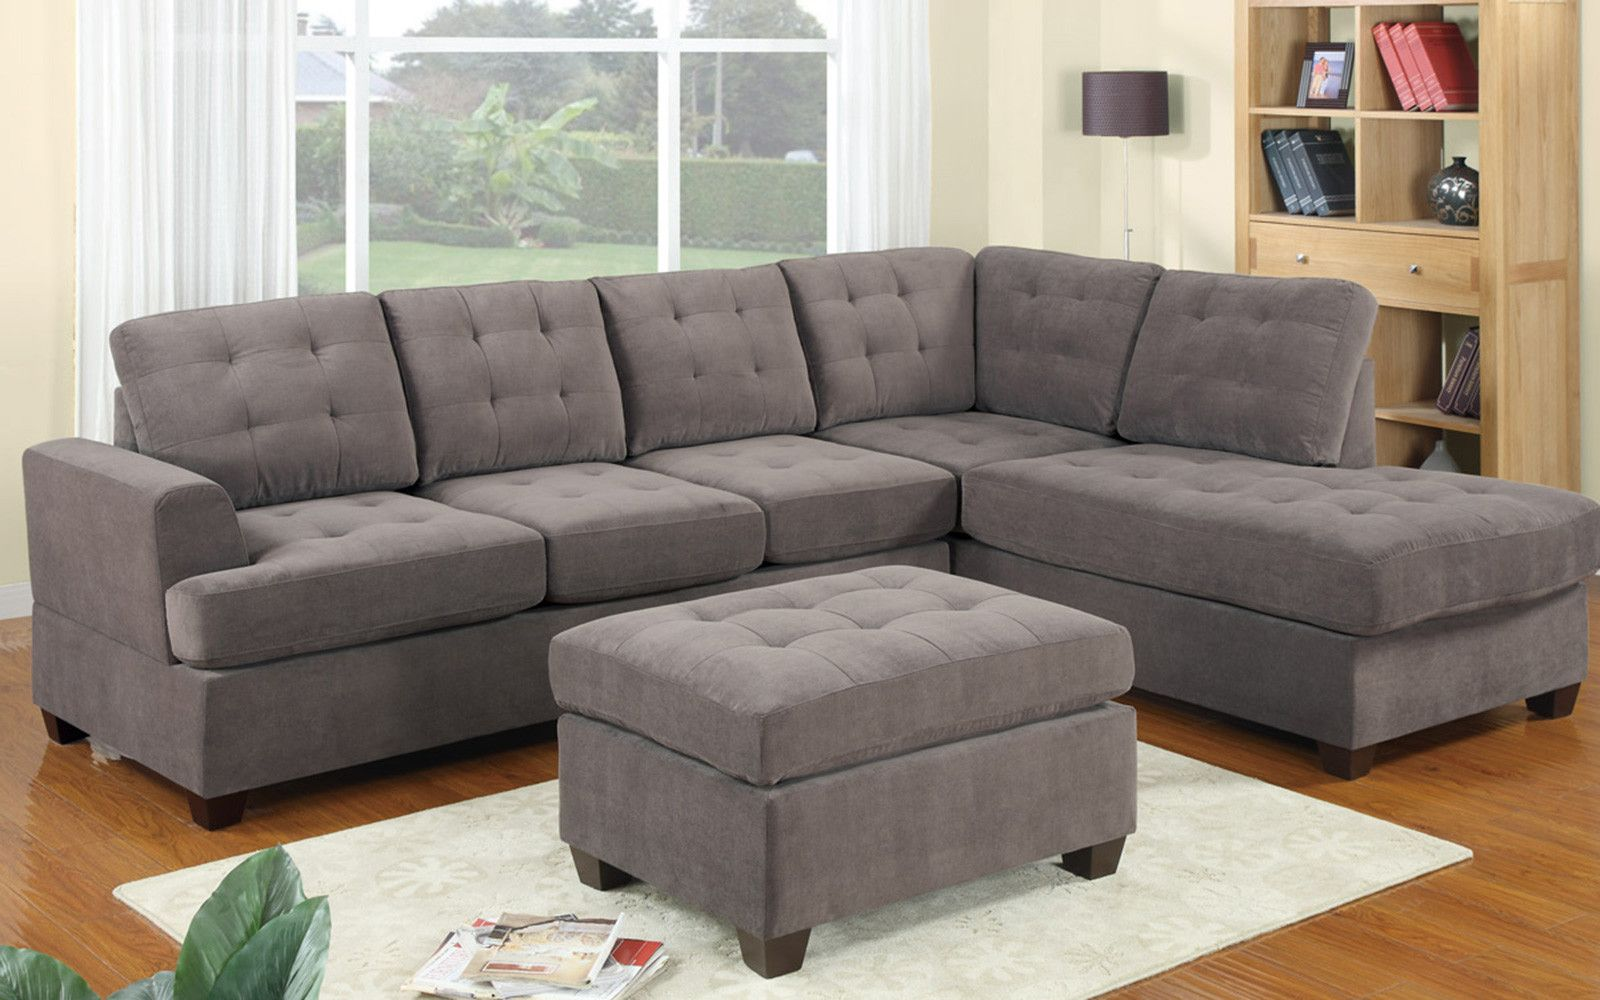 Grey Microfiber Sectional Sofa For Living Room In 2020 Sectional Sofa Couch Modern Sofa Sectional Grey Sectional